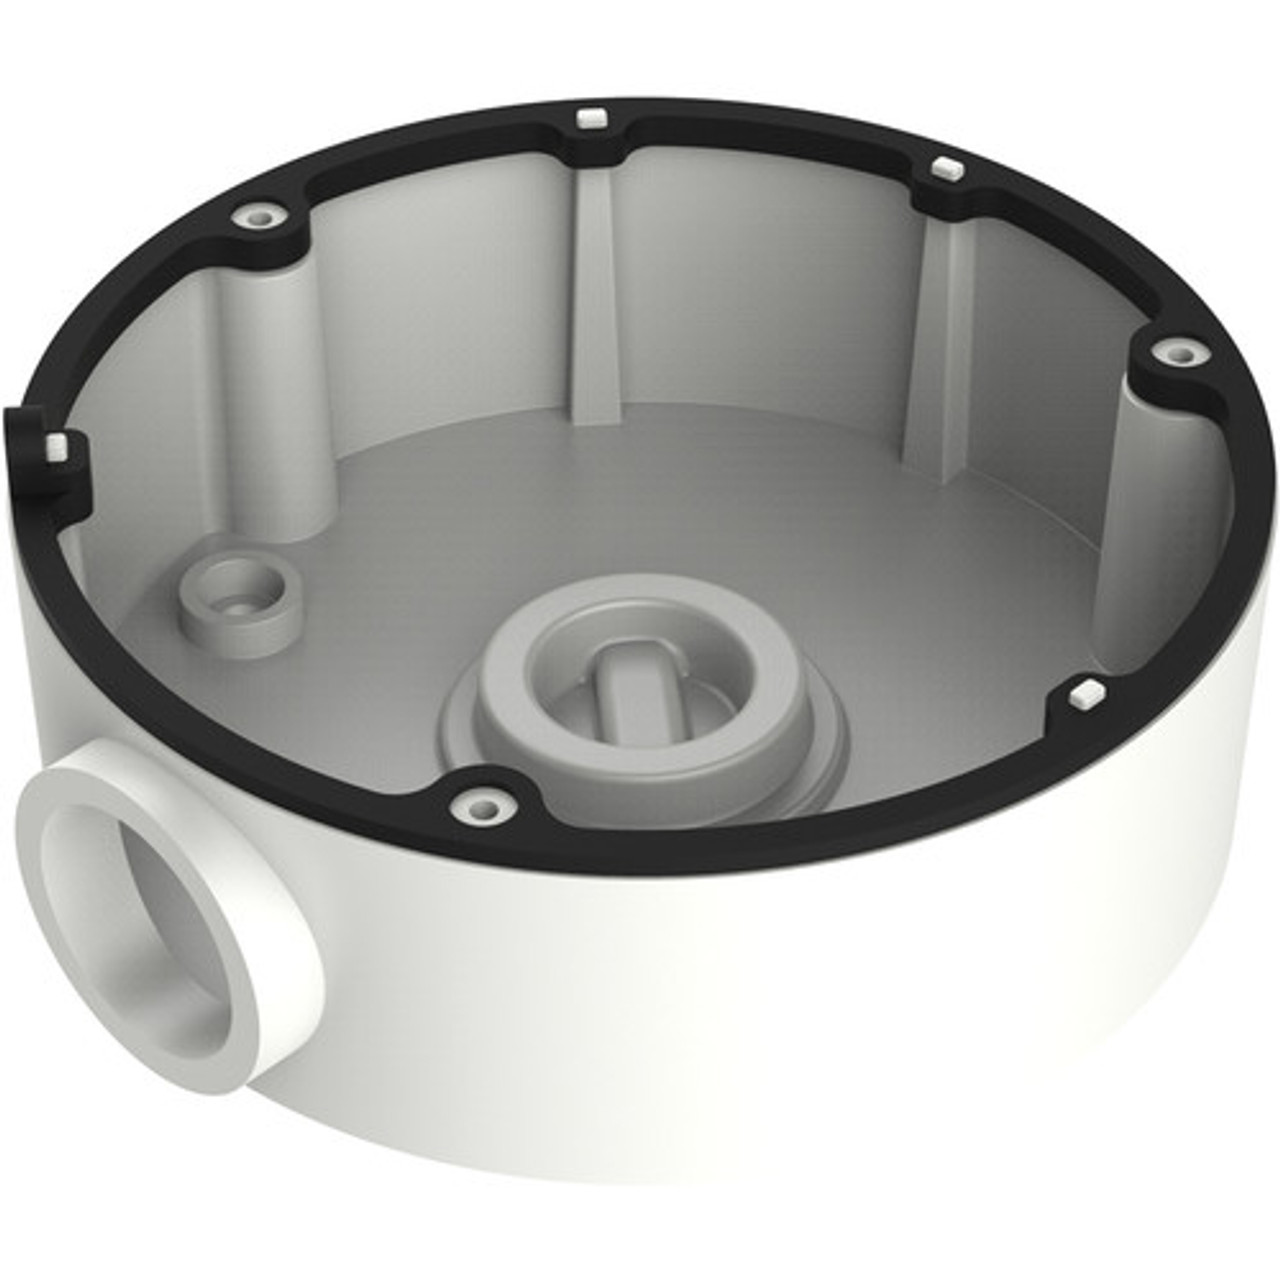 Junction Box for Classic Dome Cameras